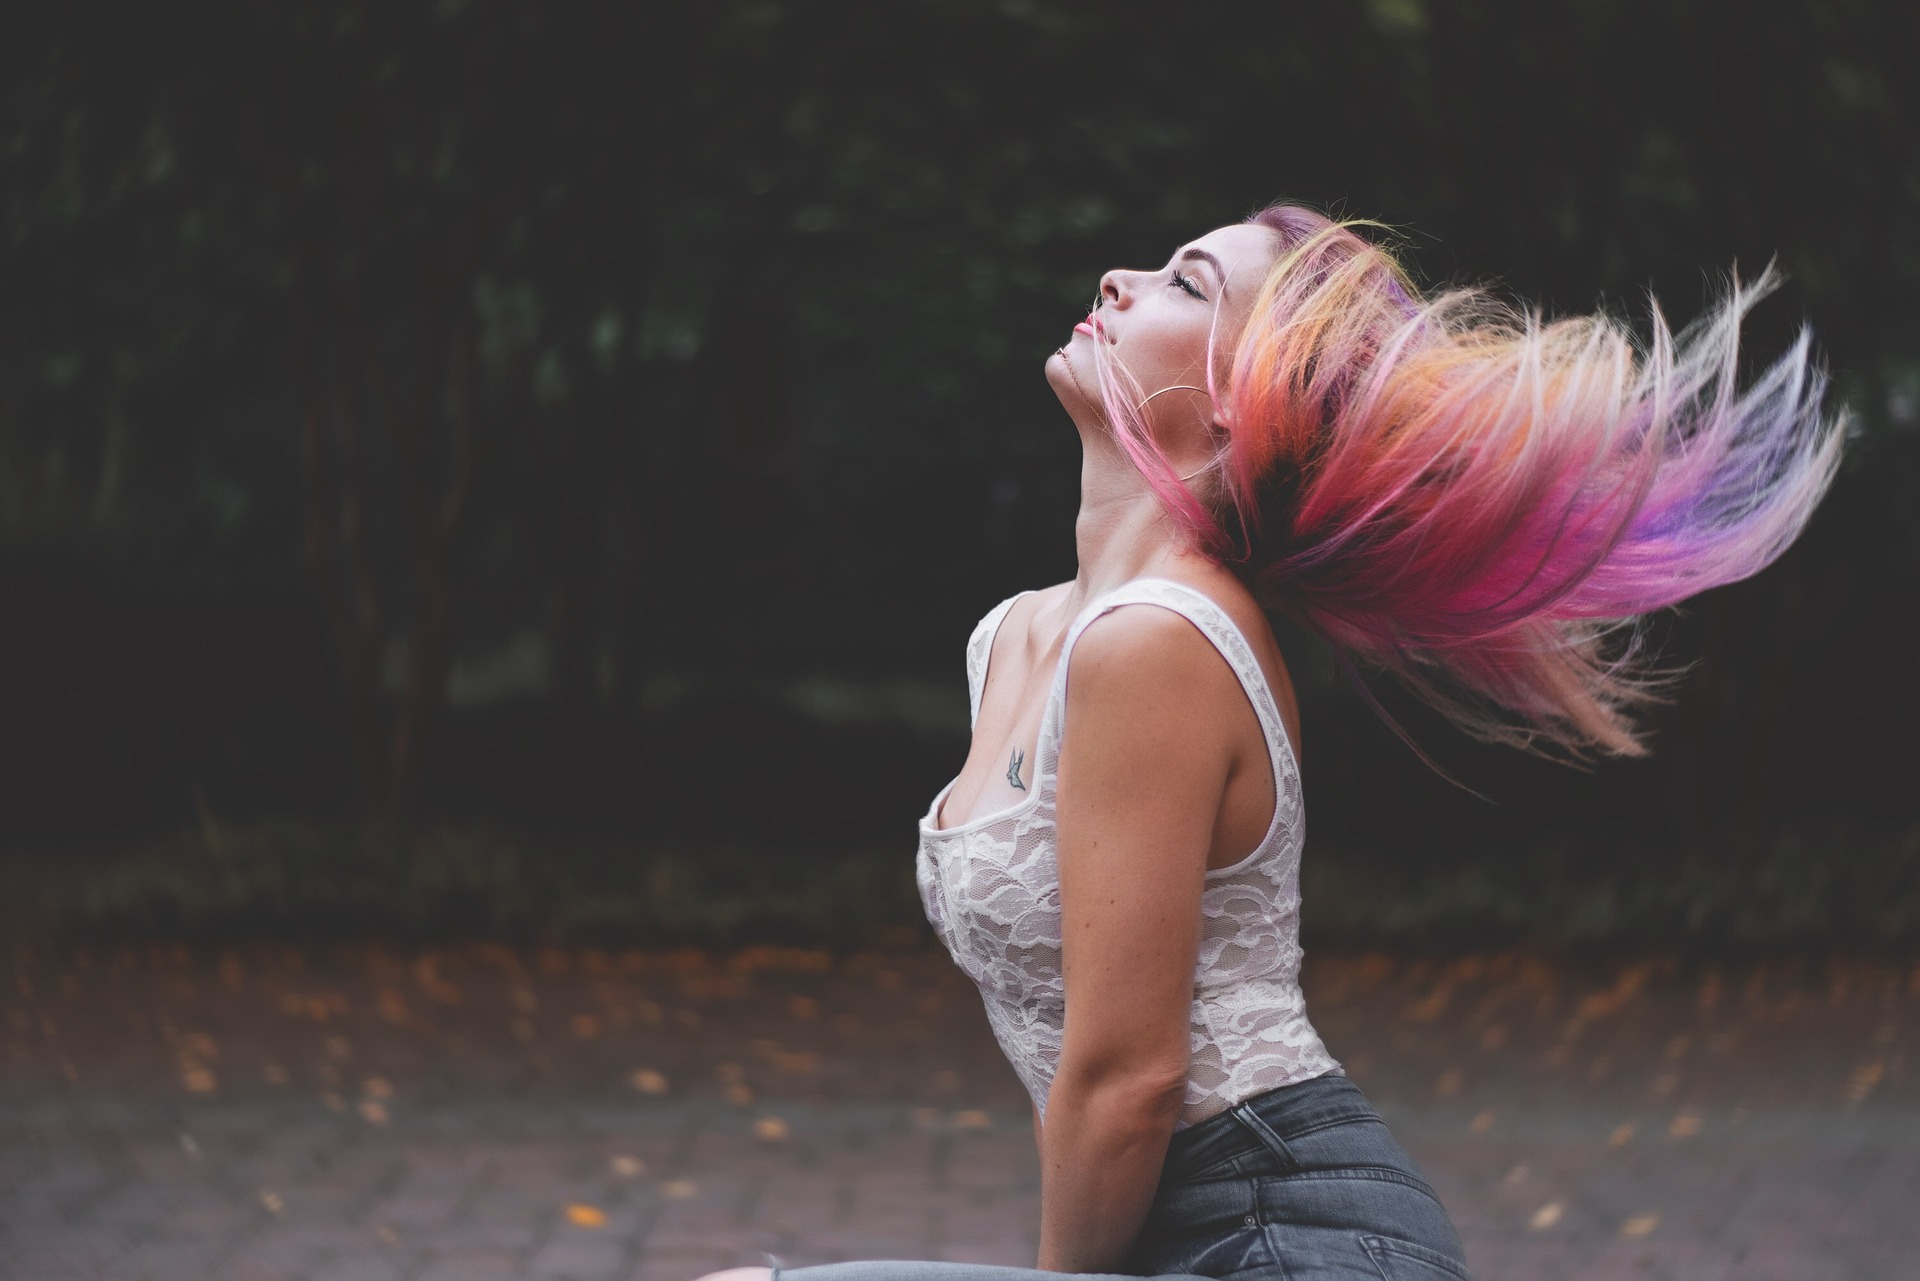 Girl's flying hair has a rainbow hair color